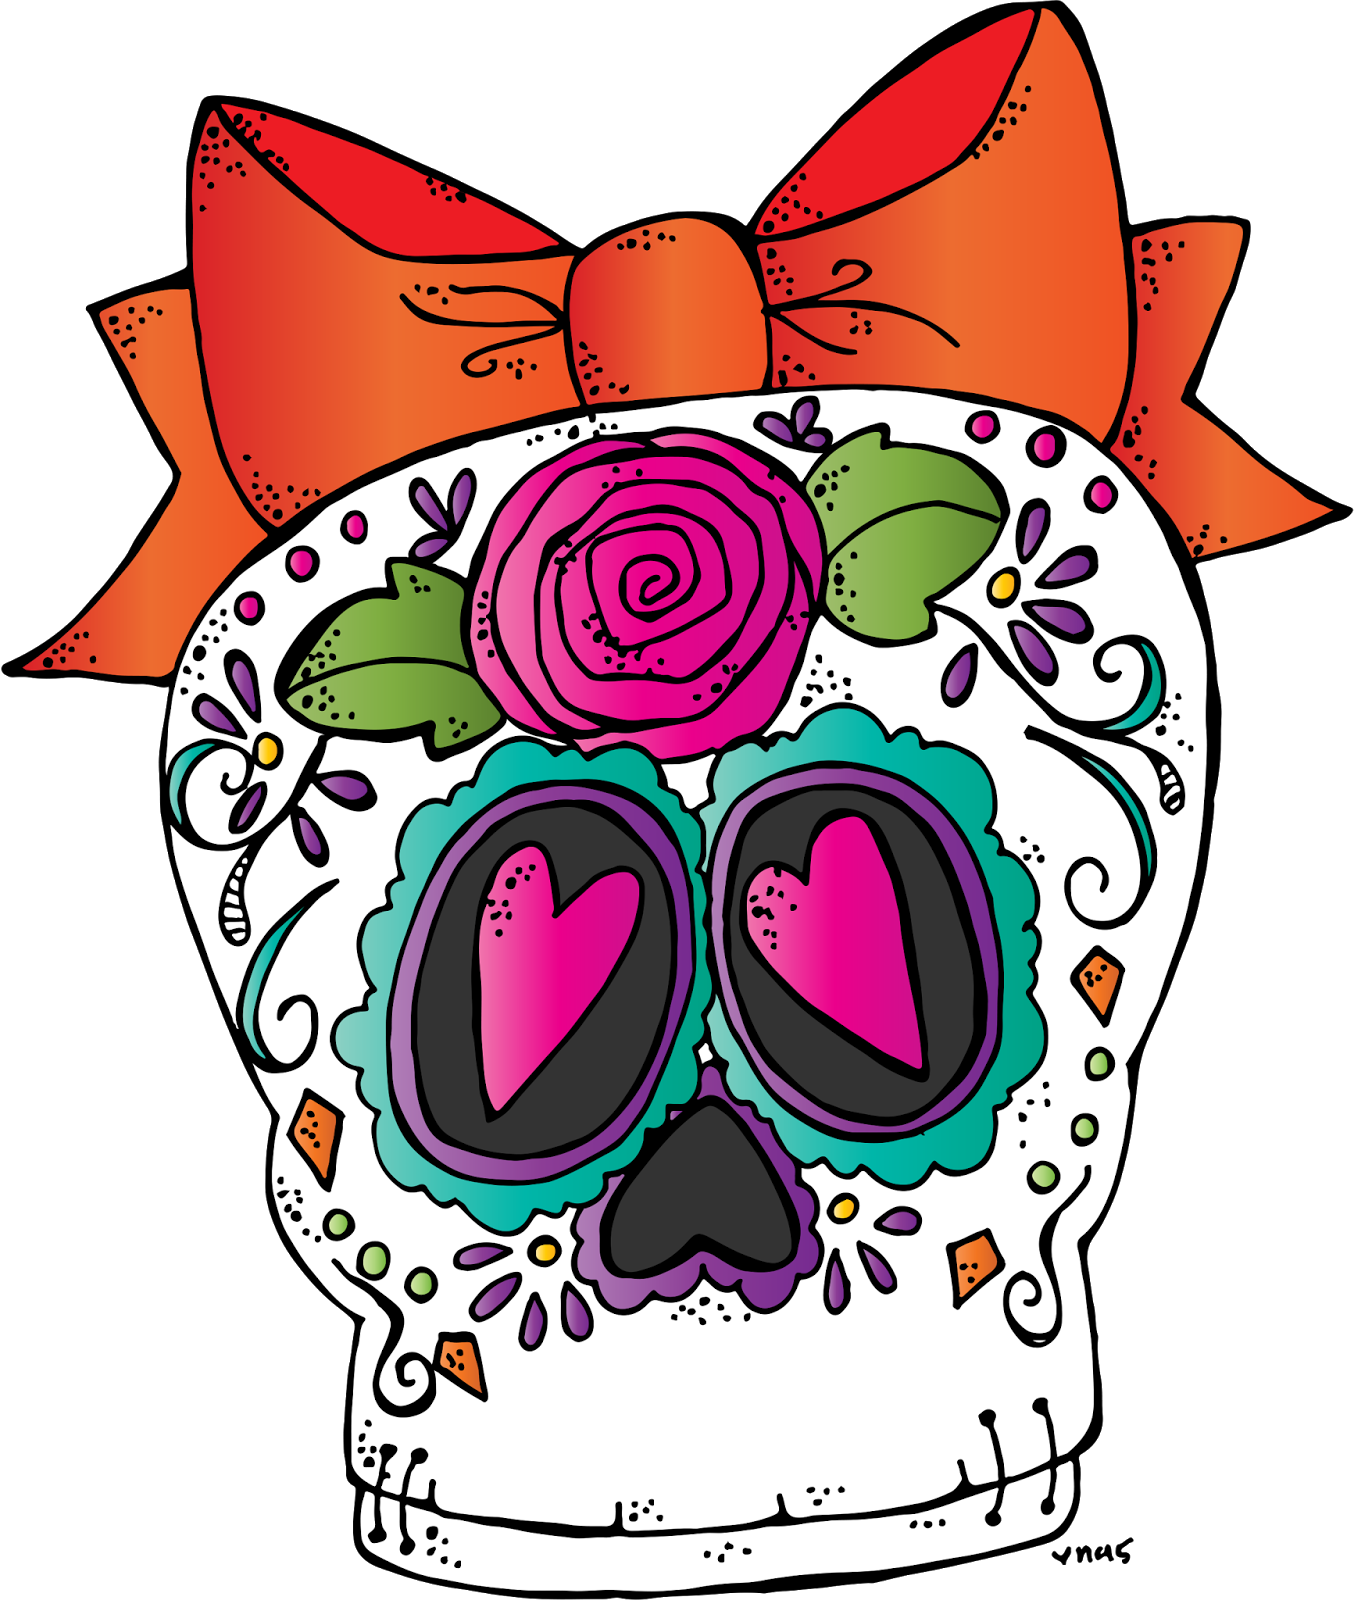 Old school boombox clipart vector transparent download MelonHeadz: Sugar Skull Freebie 2015 vector transparent download